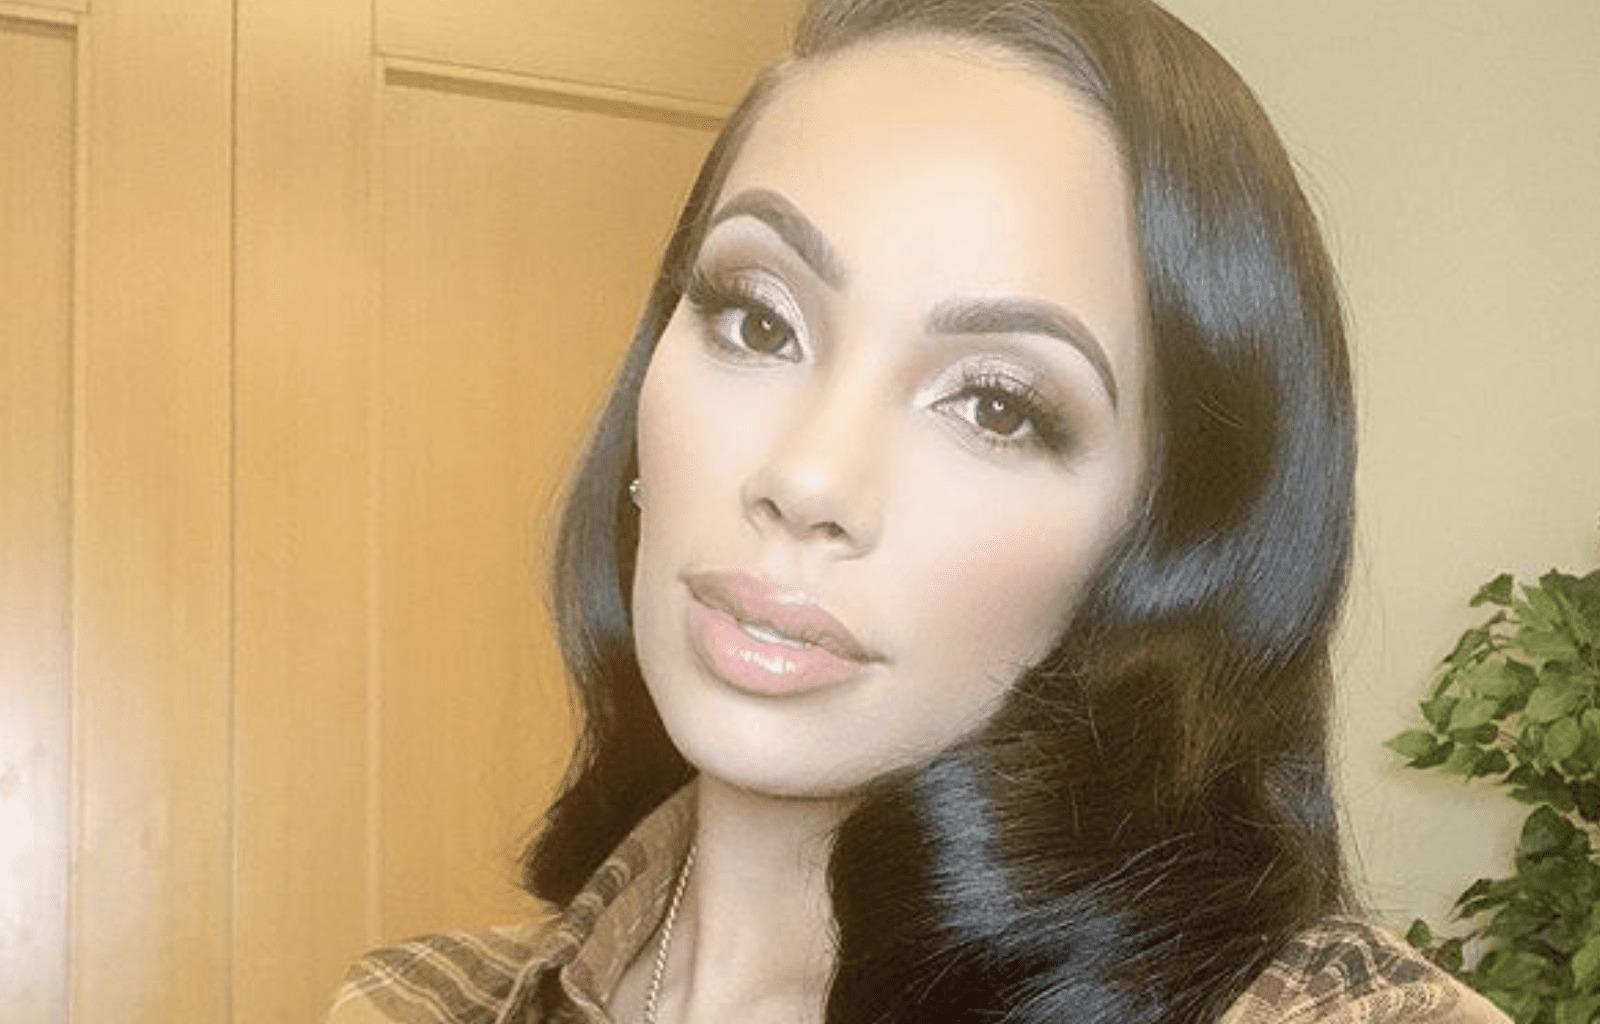 Erica Mena Drops Her Clothes And Breaks The Internet For Her 33rd Birthday - See Her Pics Here